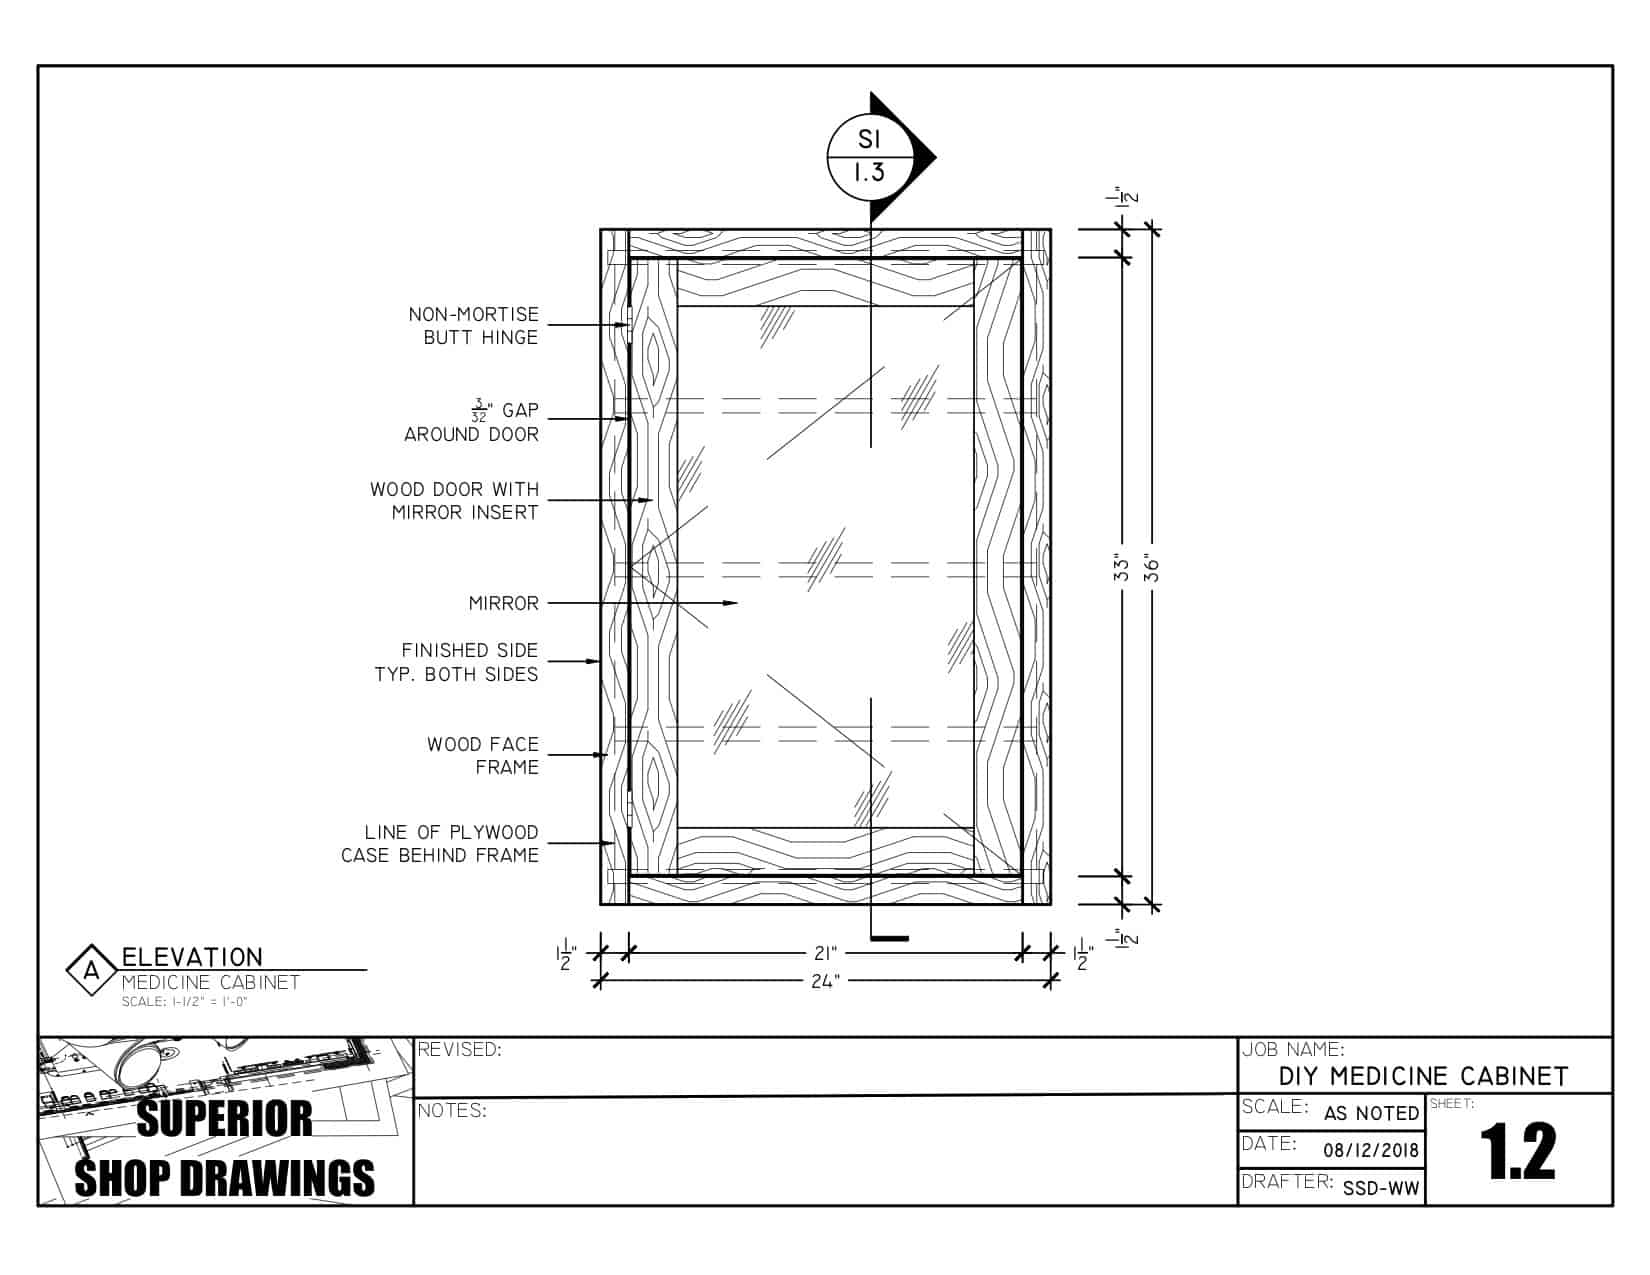 Diy Medicine Cabinet Plans Superior Shop Drawings